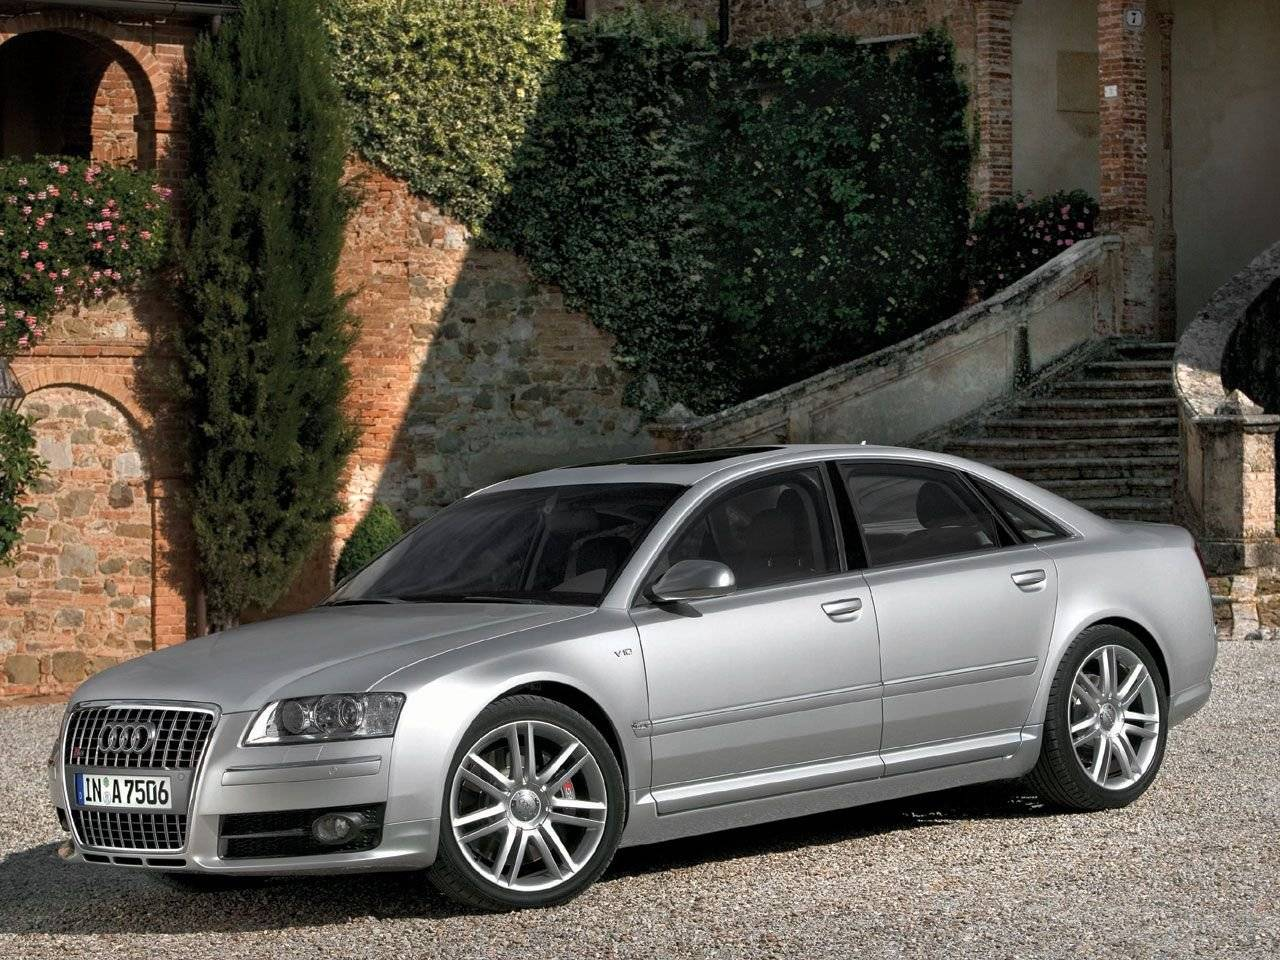 audi s8 met 450 pk sterke lambo v10 autonieuws. Black Bedroom Furniture Sets. Home Design Ideas